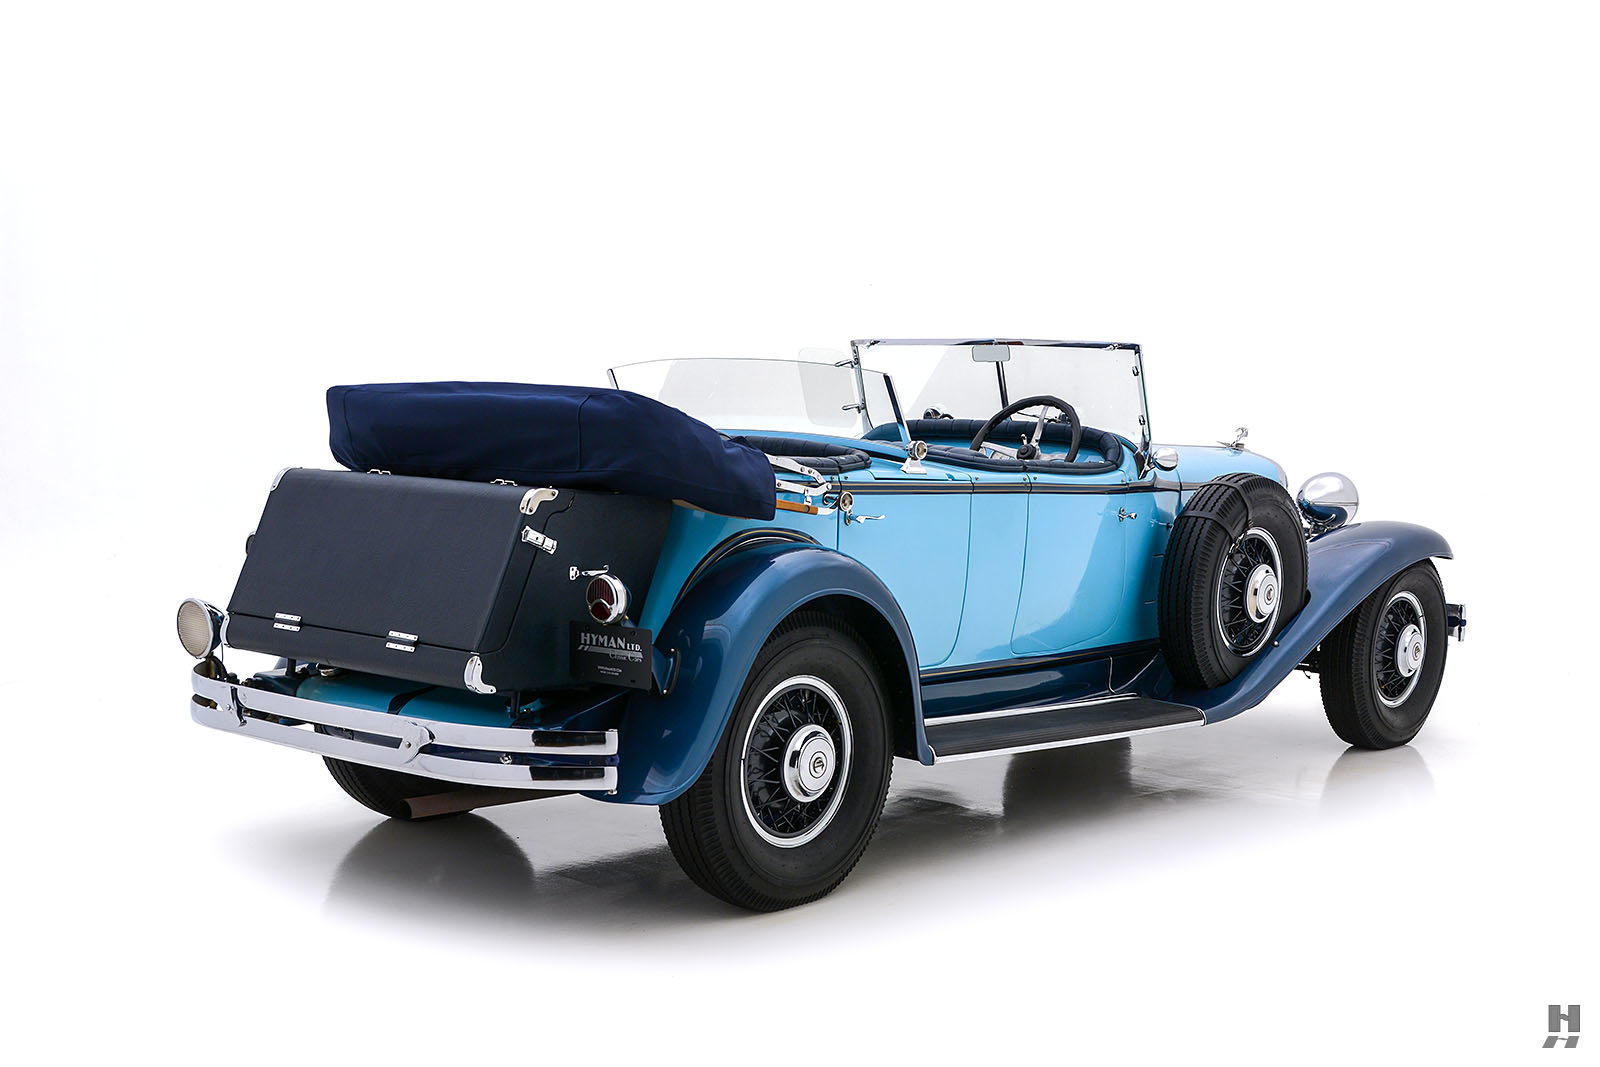 1931 CHRYSLER CG IMPERIAL DUAL COWL PHAETON For Sale (picture 5 of 6)